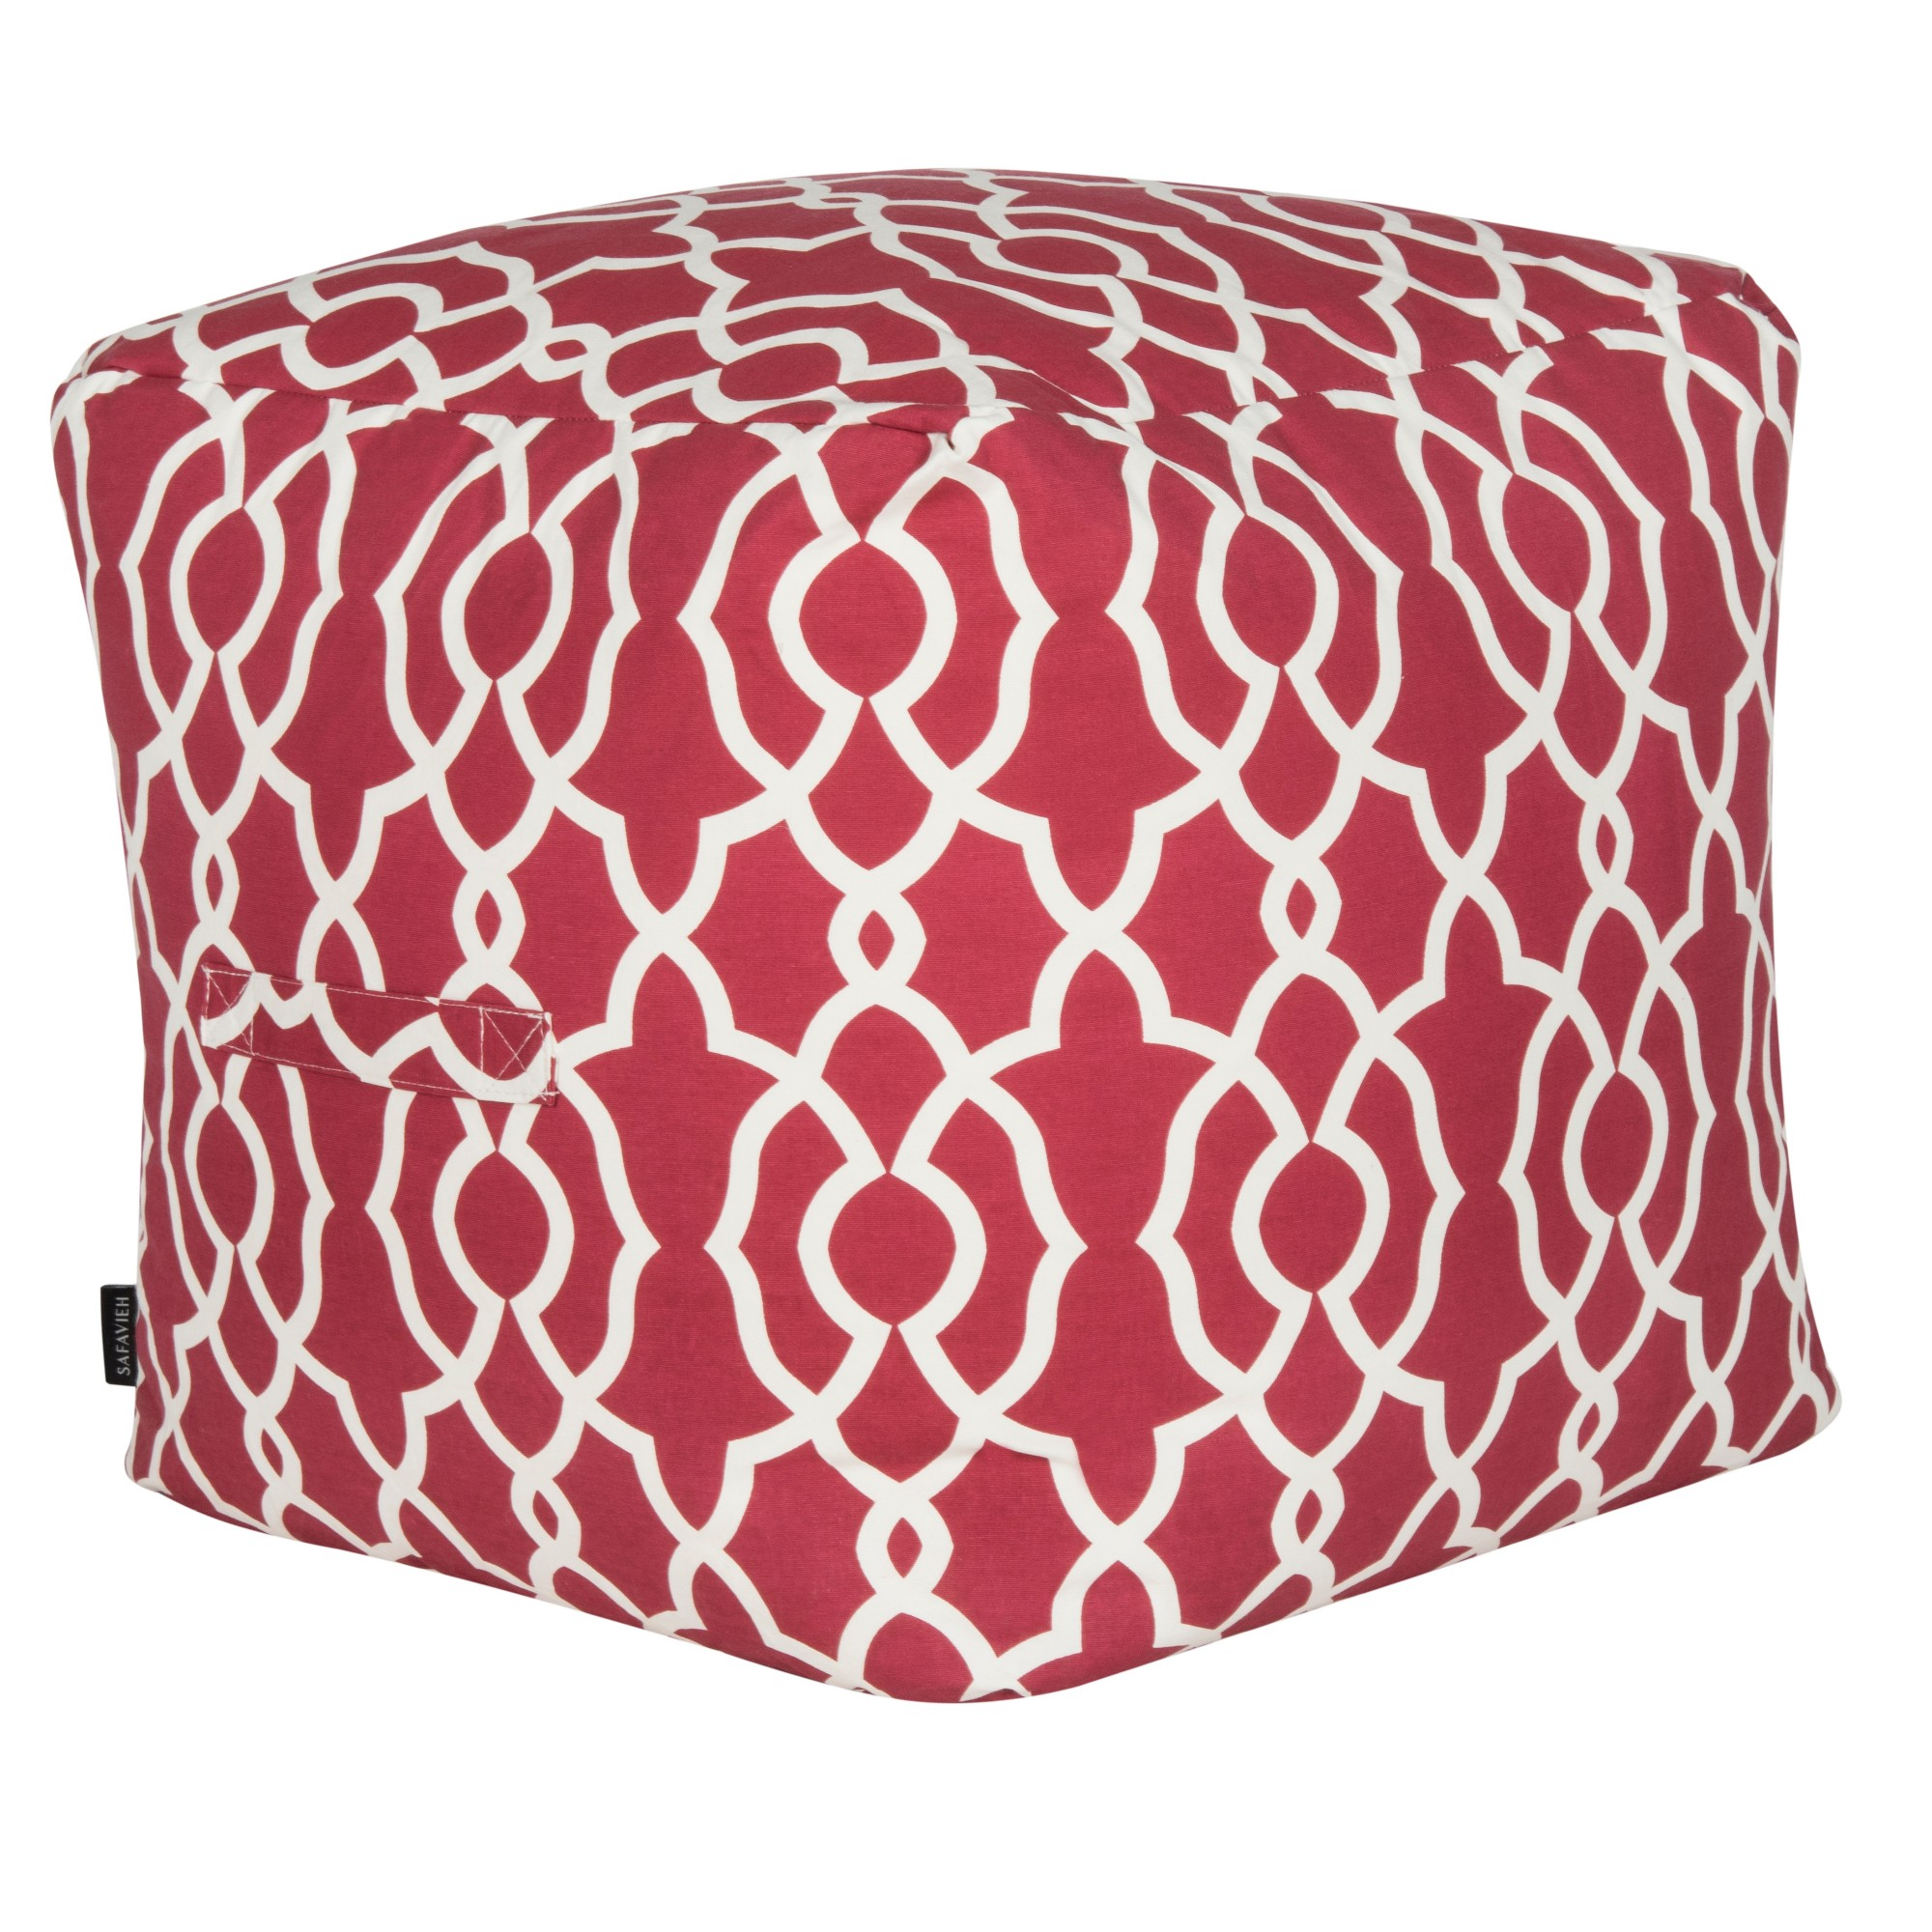 Ottomans red white safavieh ottomans and products